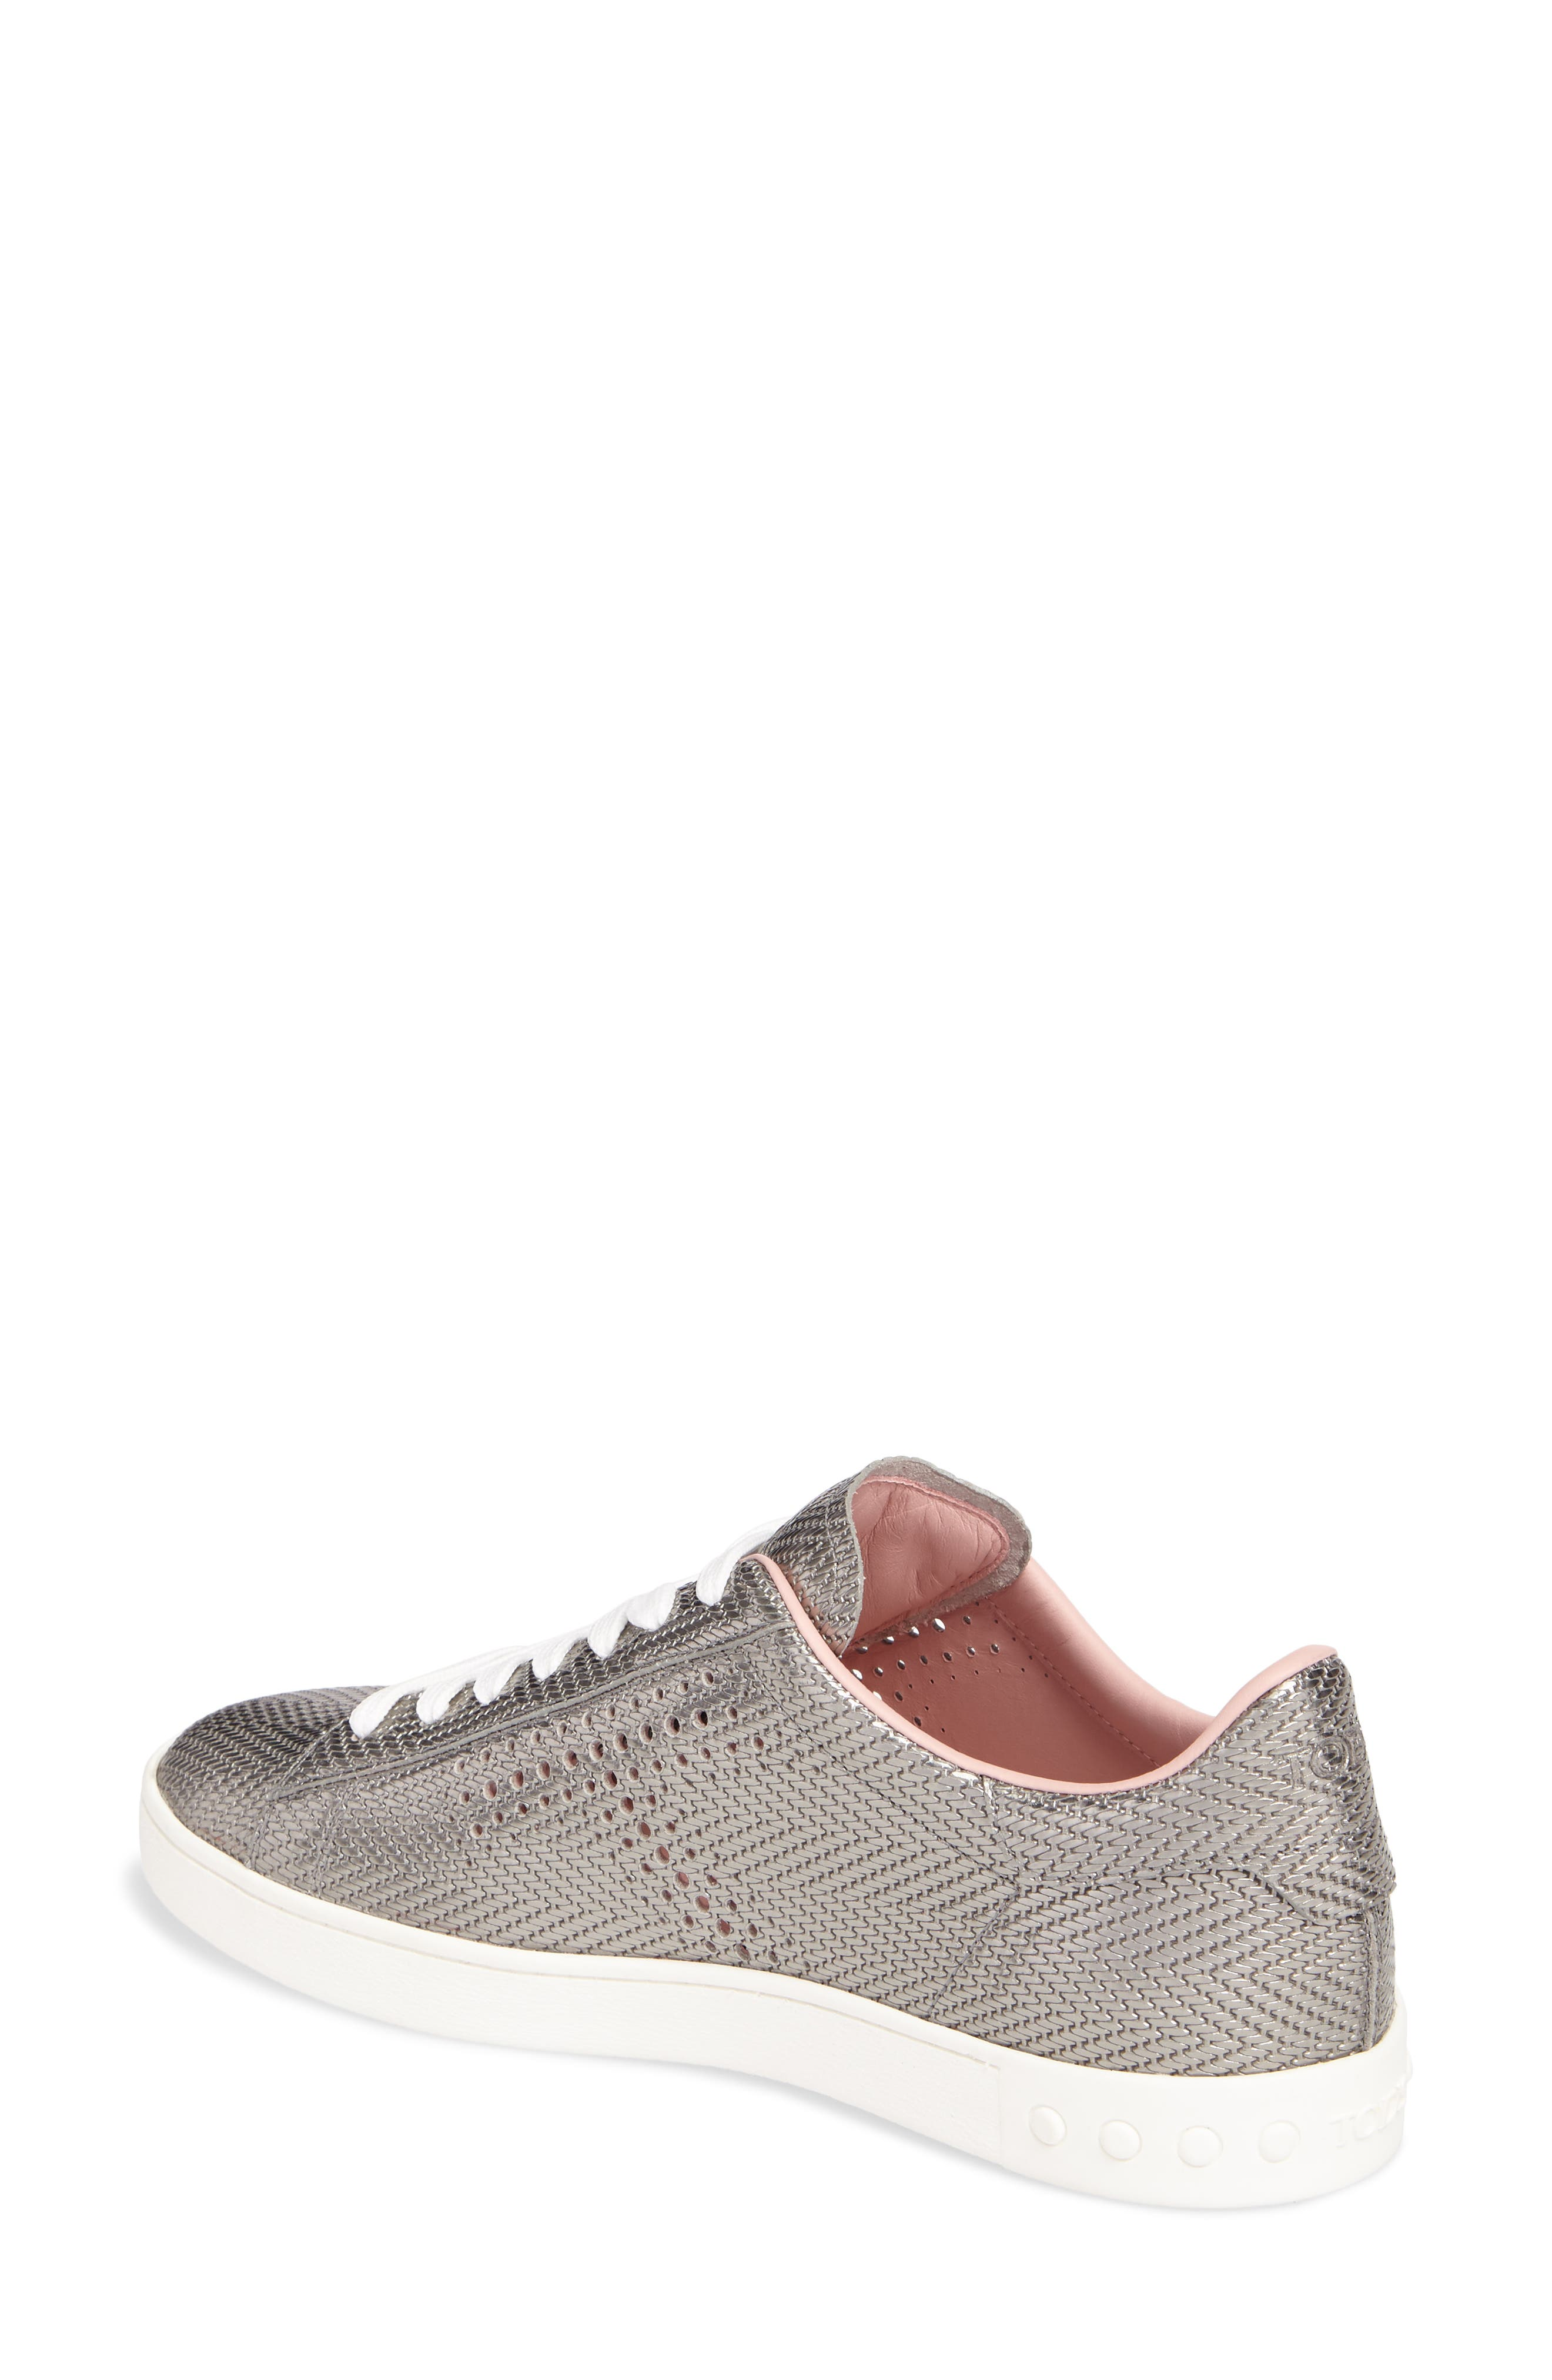 Perforated T Sneaker,                             Alternate thumbnail 2, color,                             040